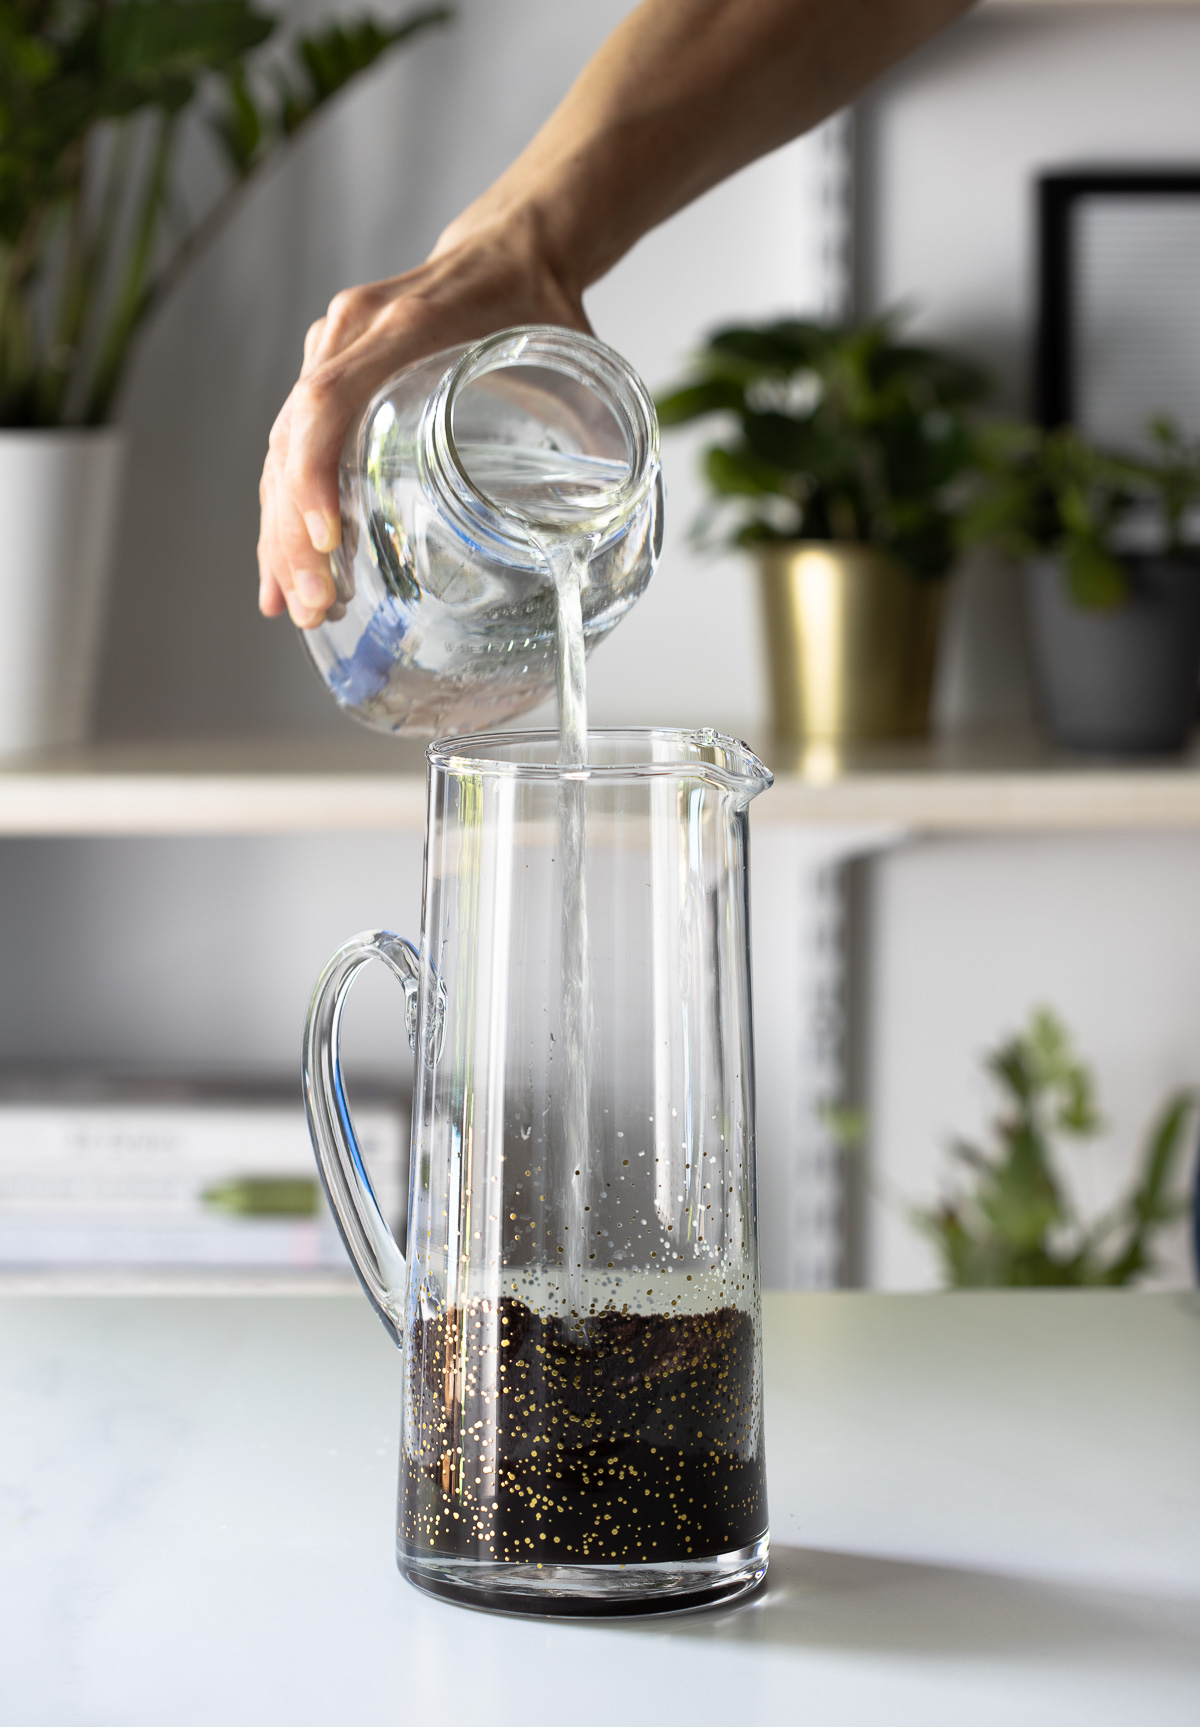 A hand pouring water into a glass pitcher with coarse ground coffee inside.